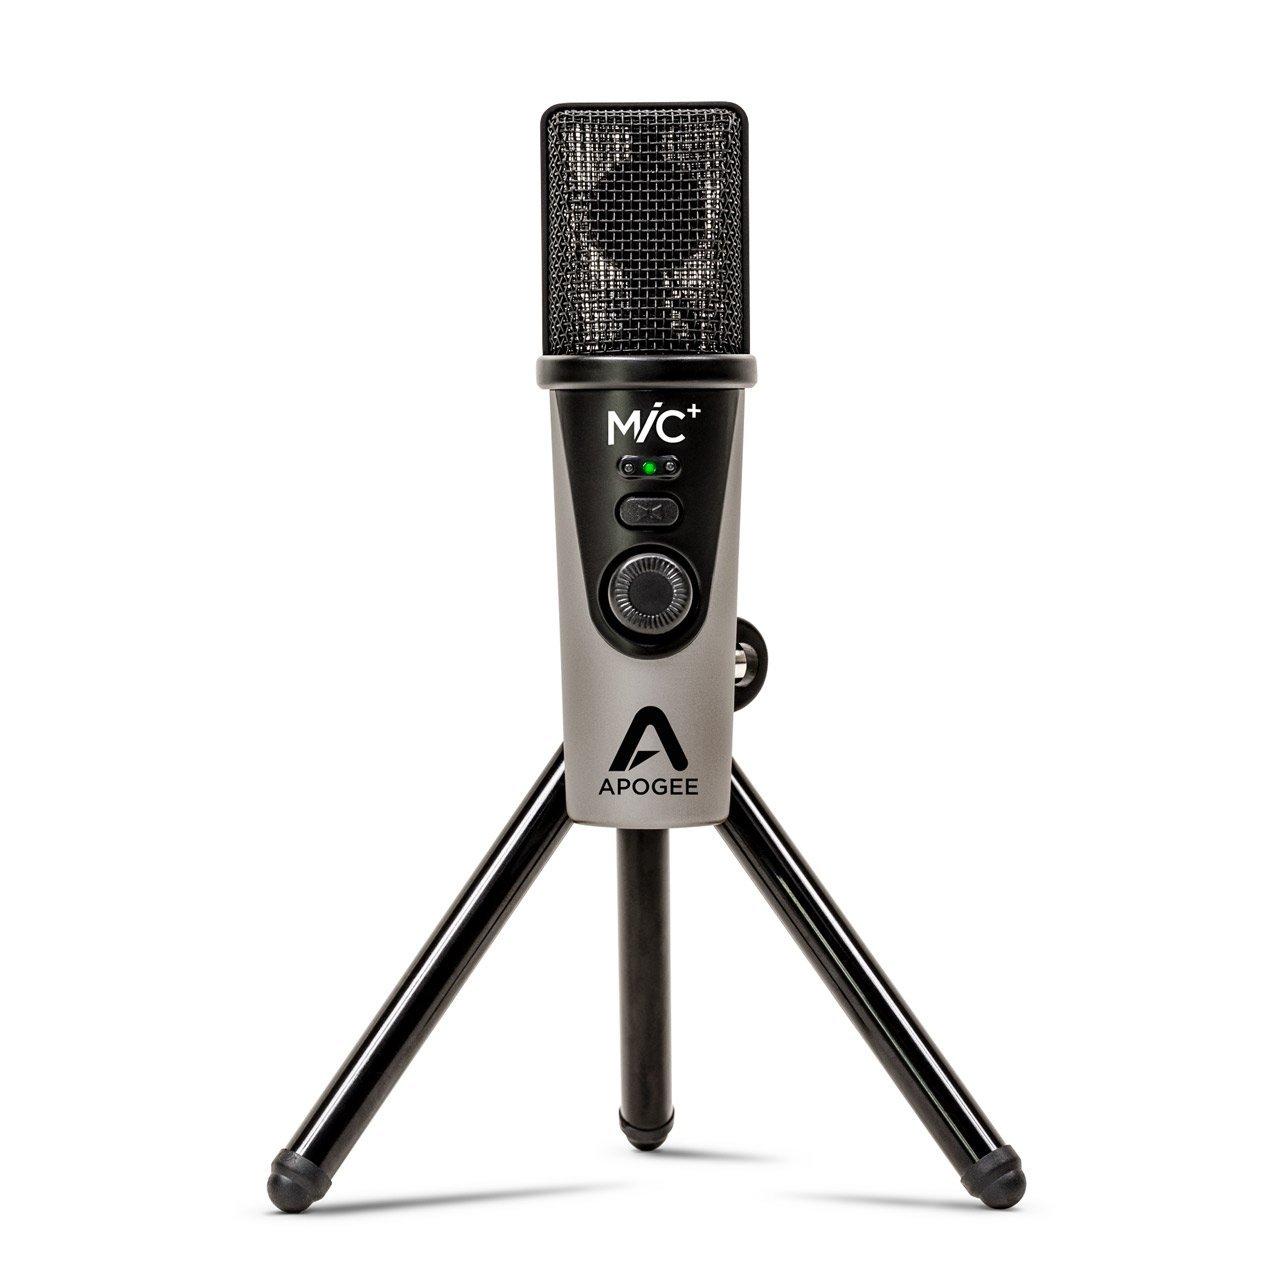 USB Microphones - Apogee MiC+ Cardioid Condenser USB Microphone For Mac/Windows/iOS